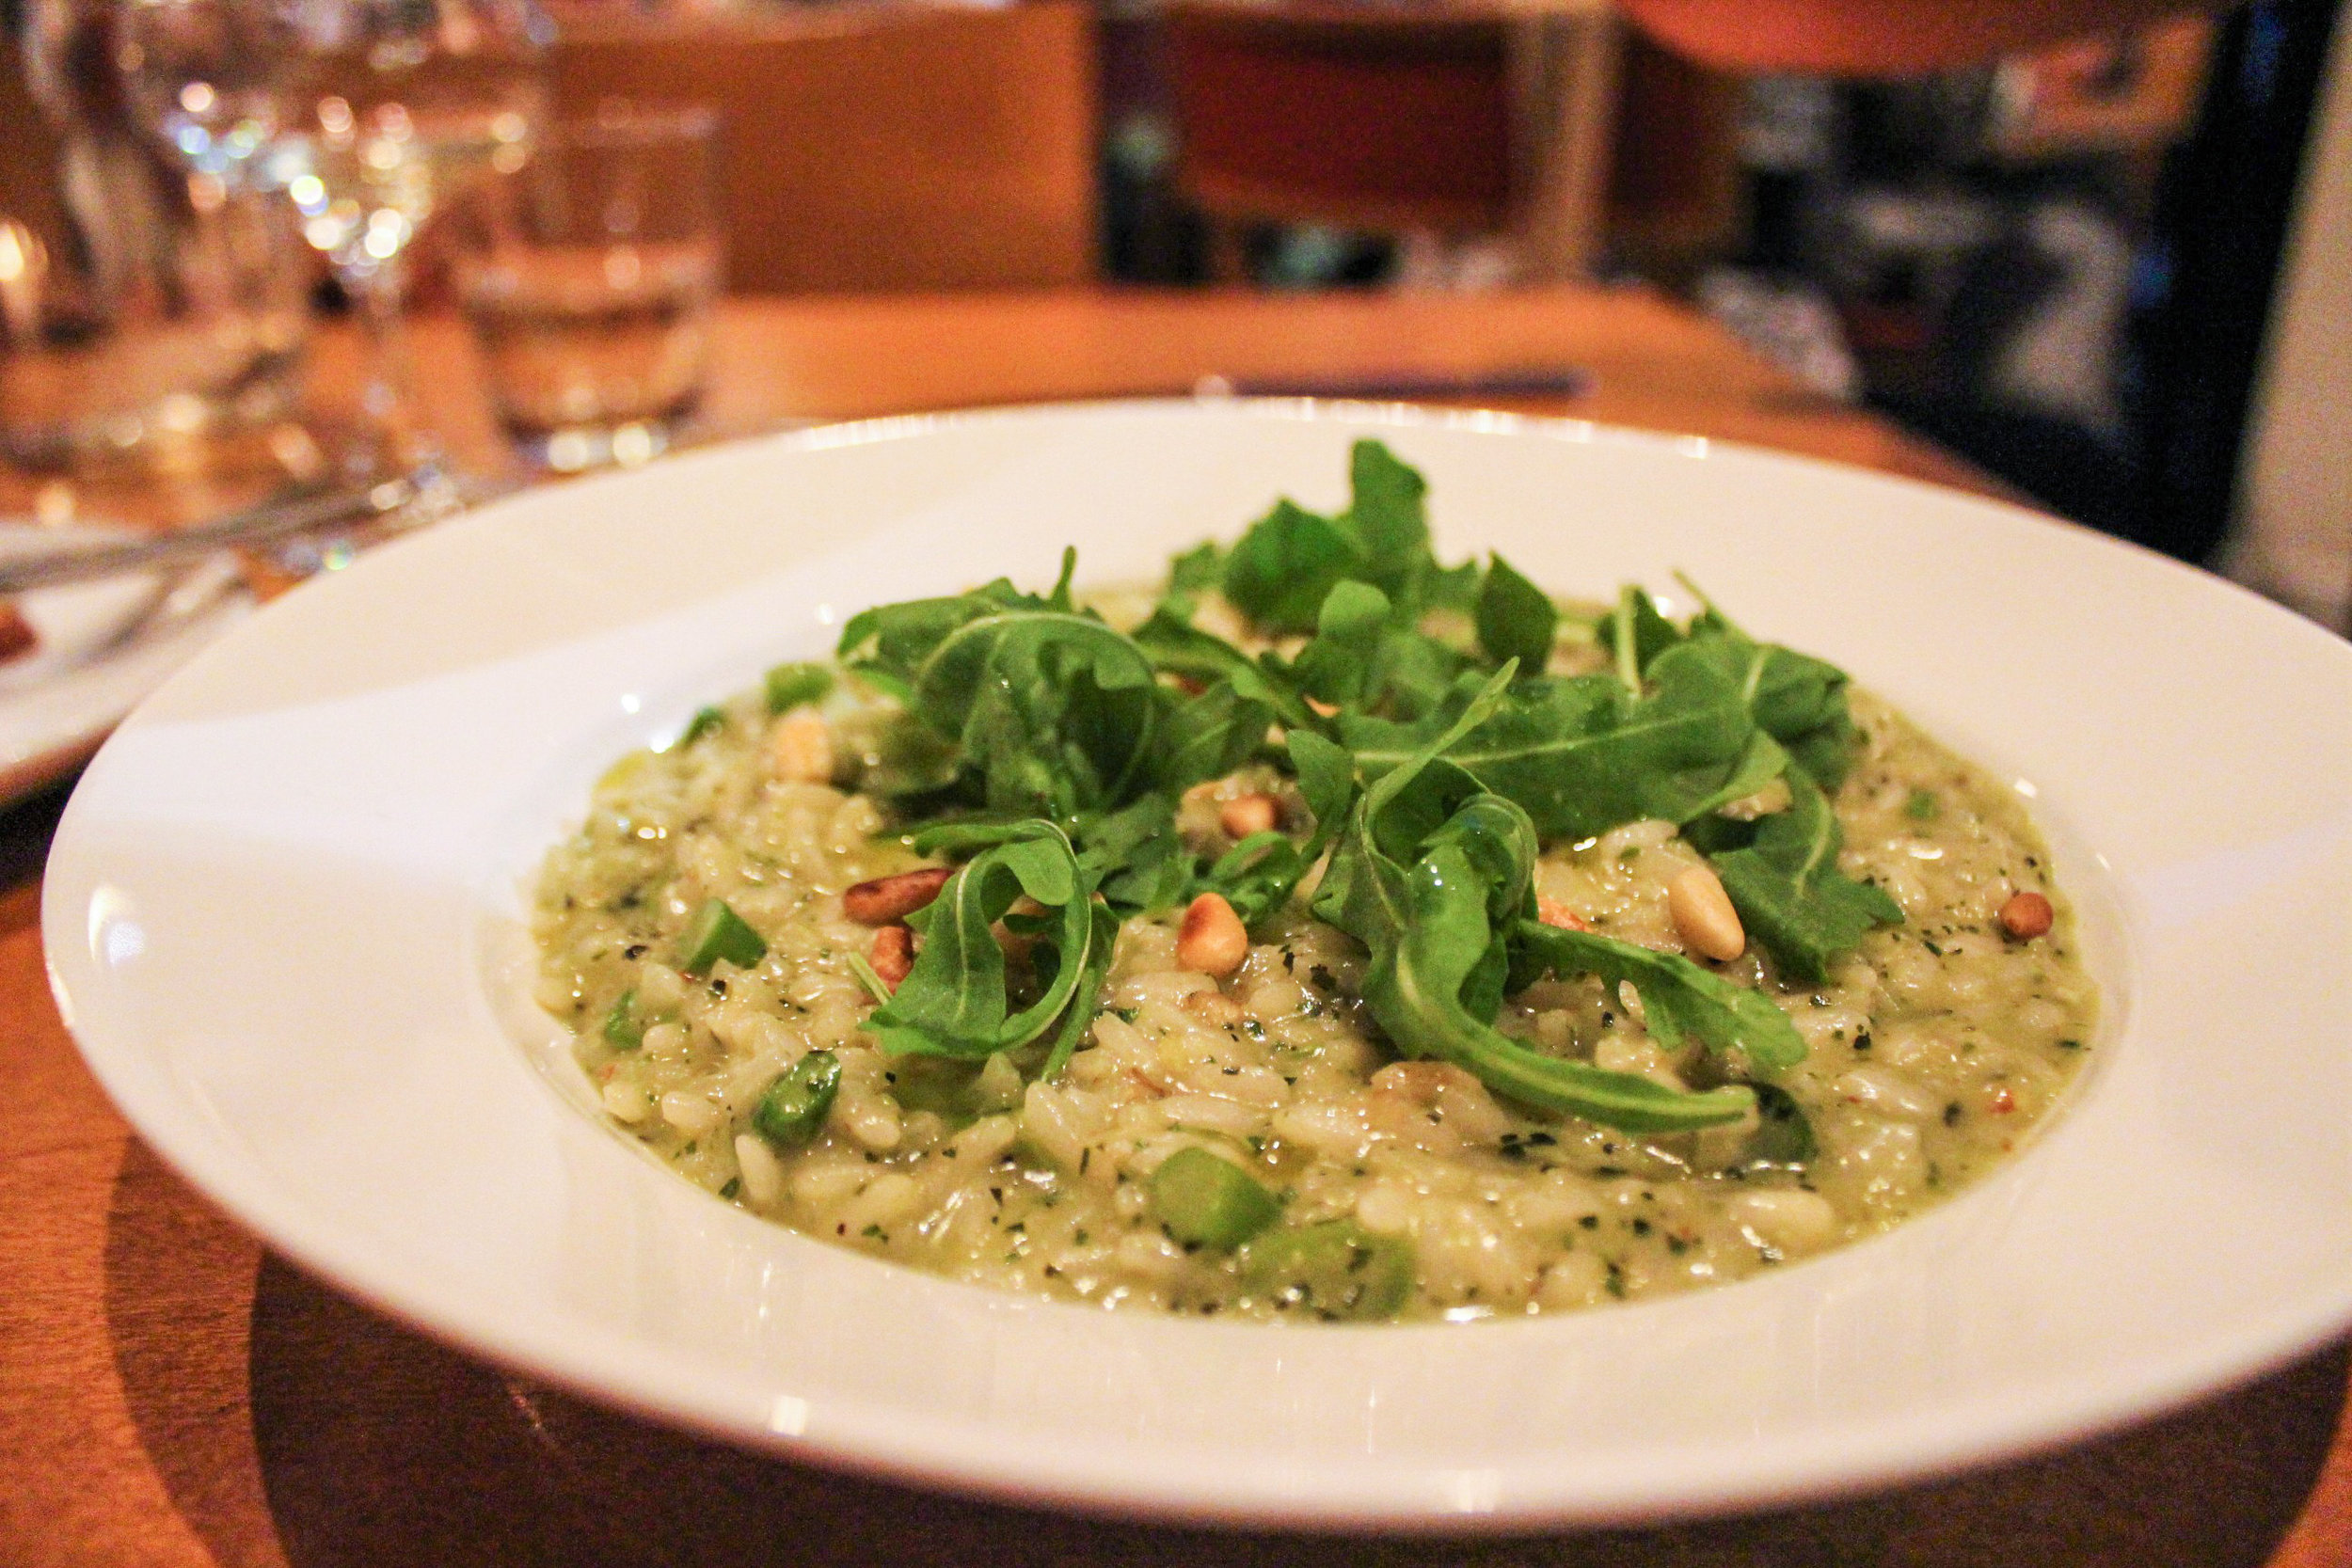 Risotto, Green Beats, Basil Pesto, and Pine Nuts